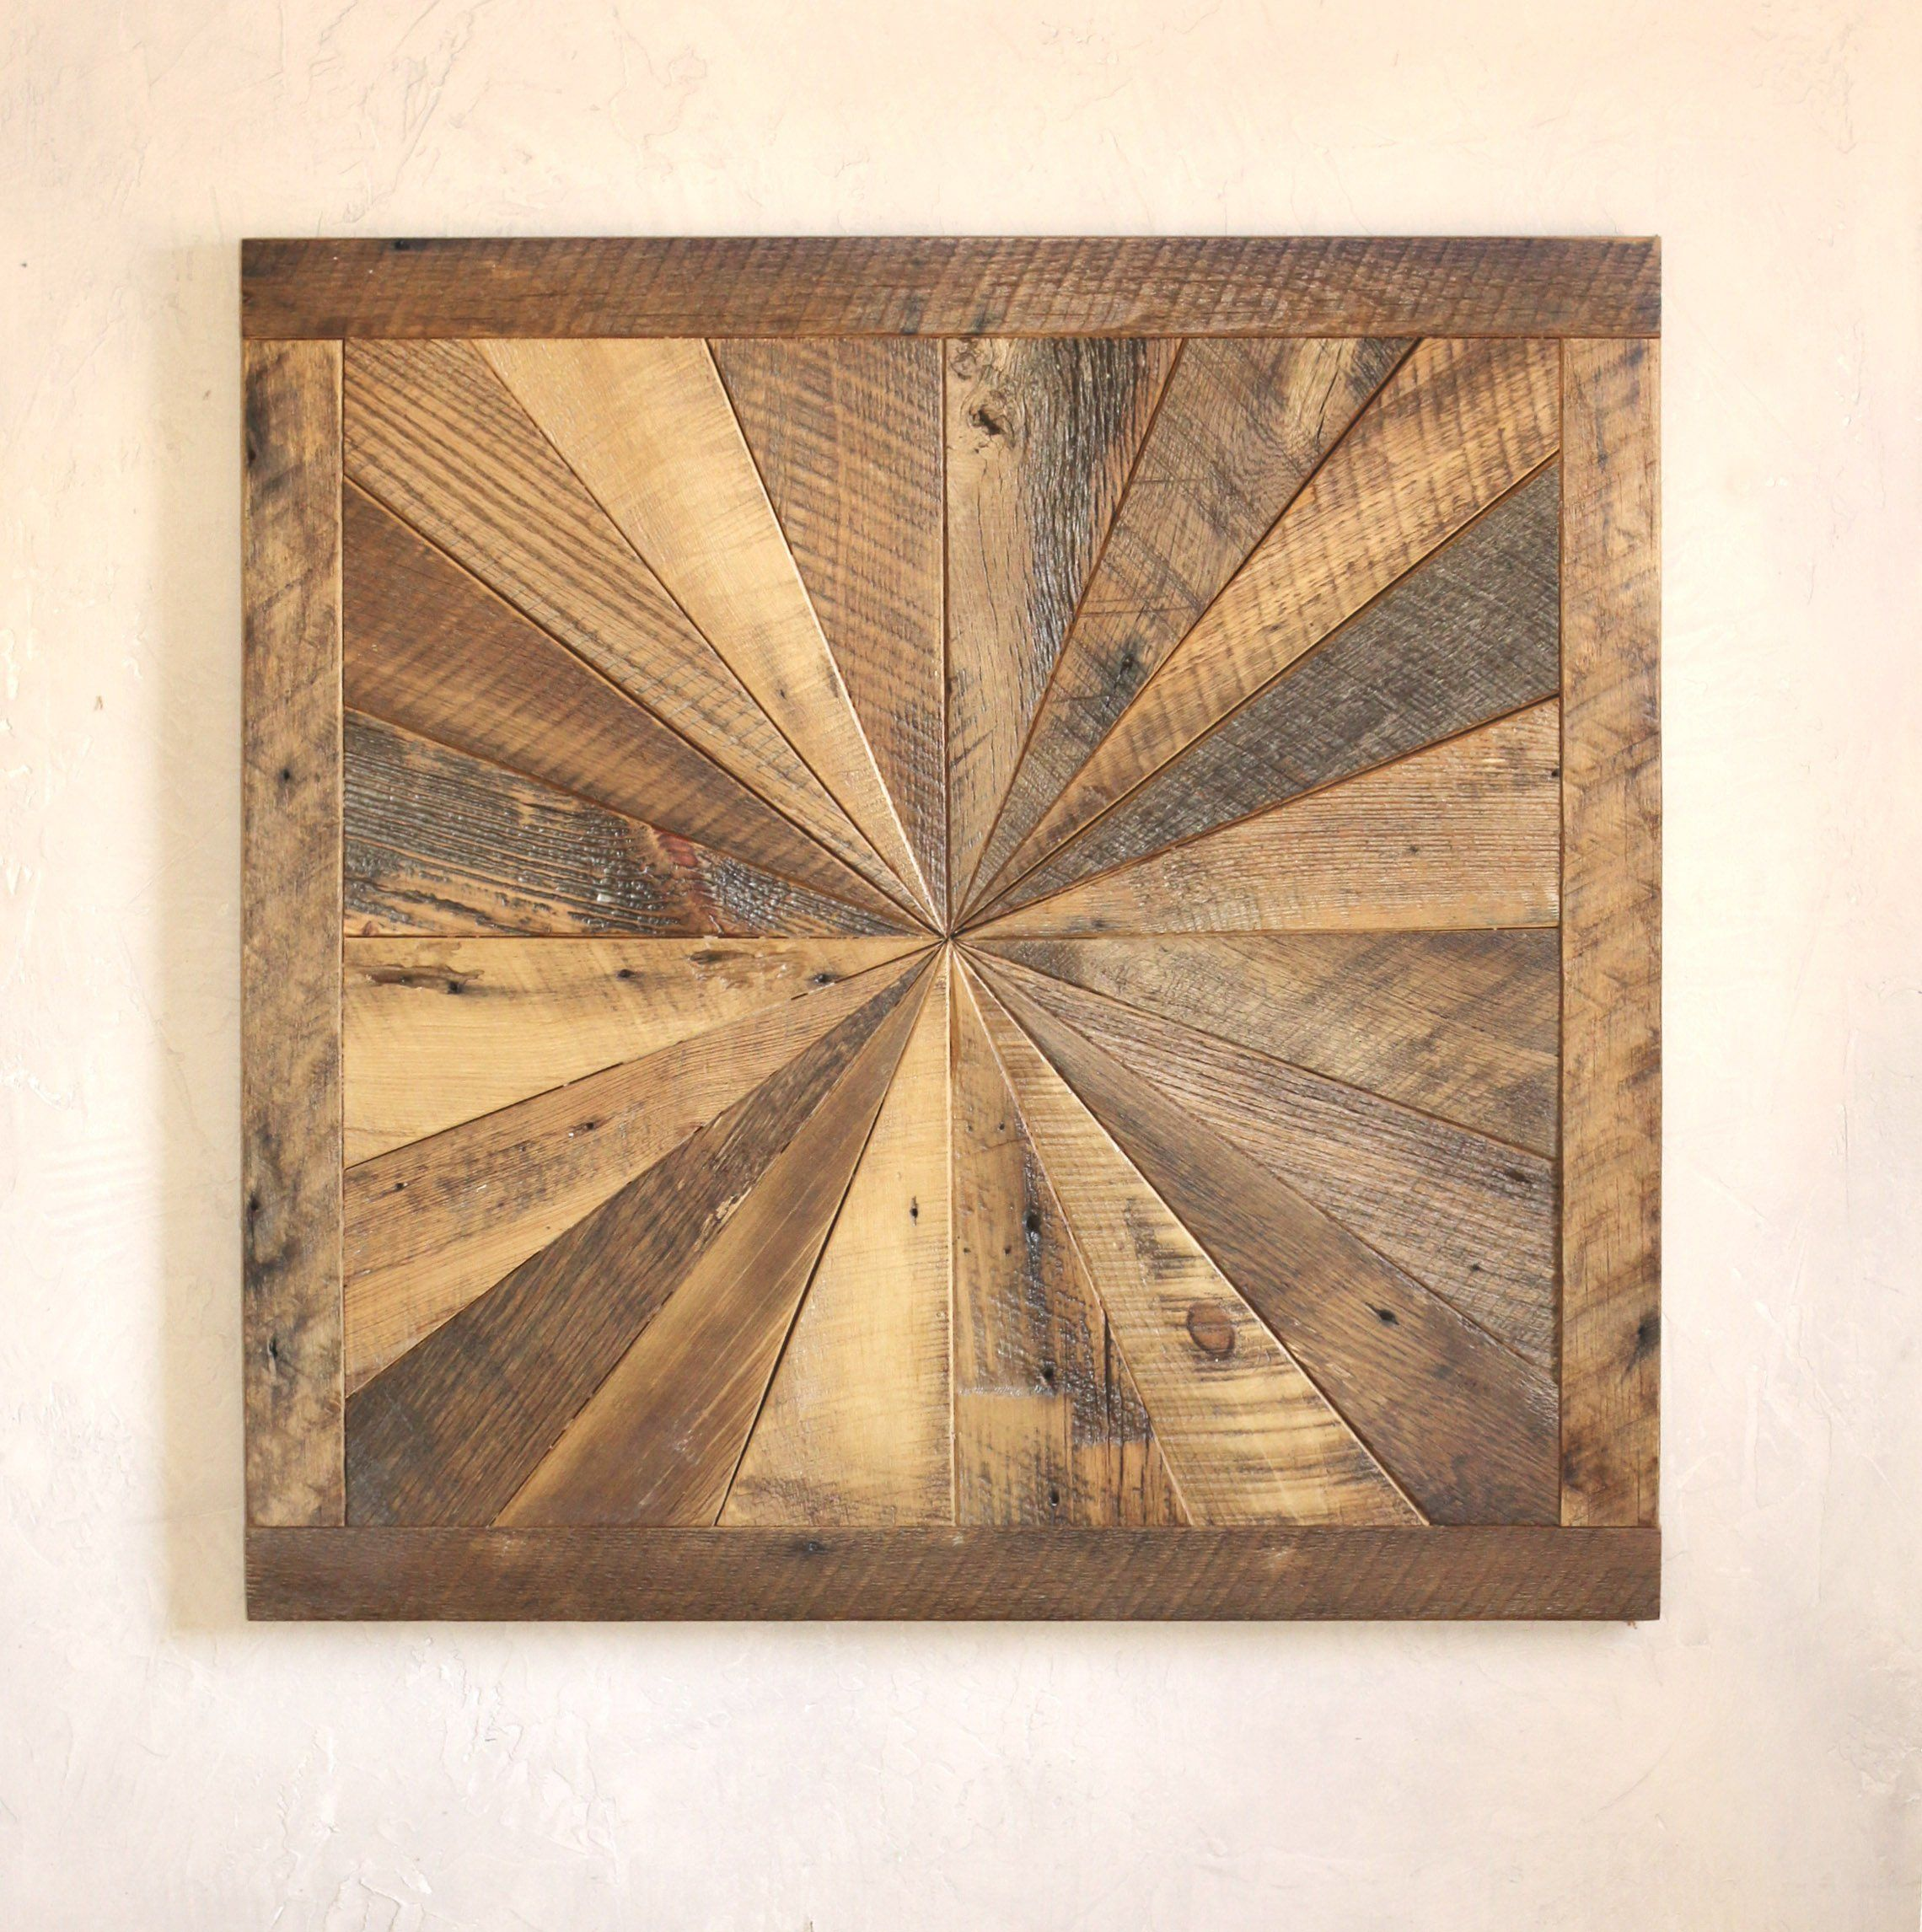 Barnwood Wall Art starburst pattern wall art made from reclaimed wood - barn wood